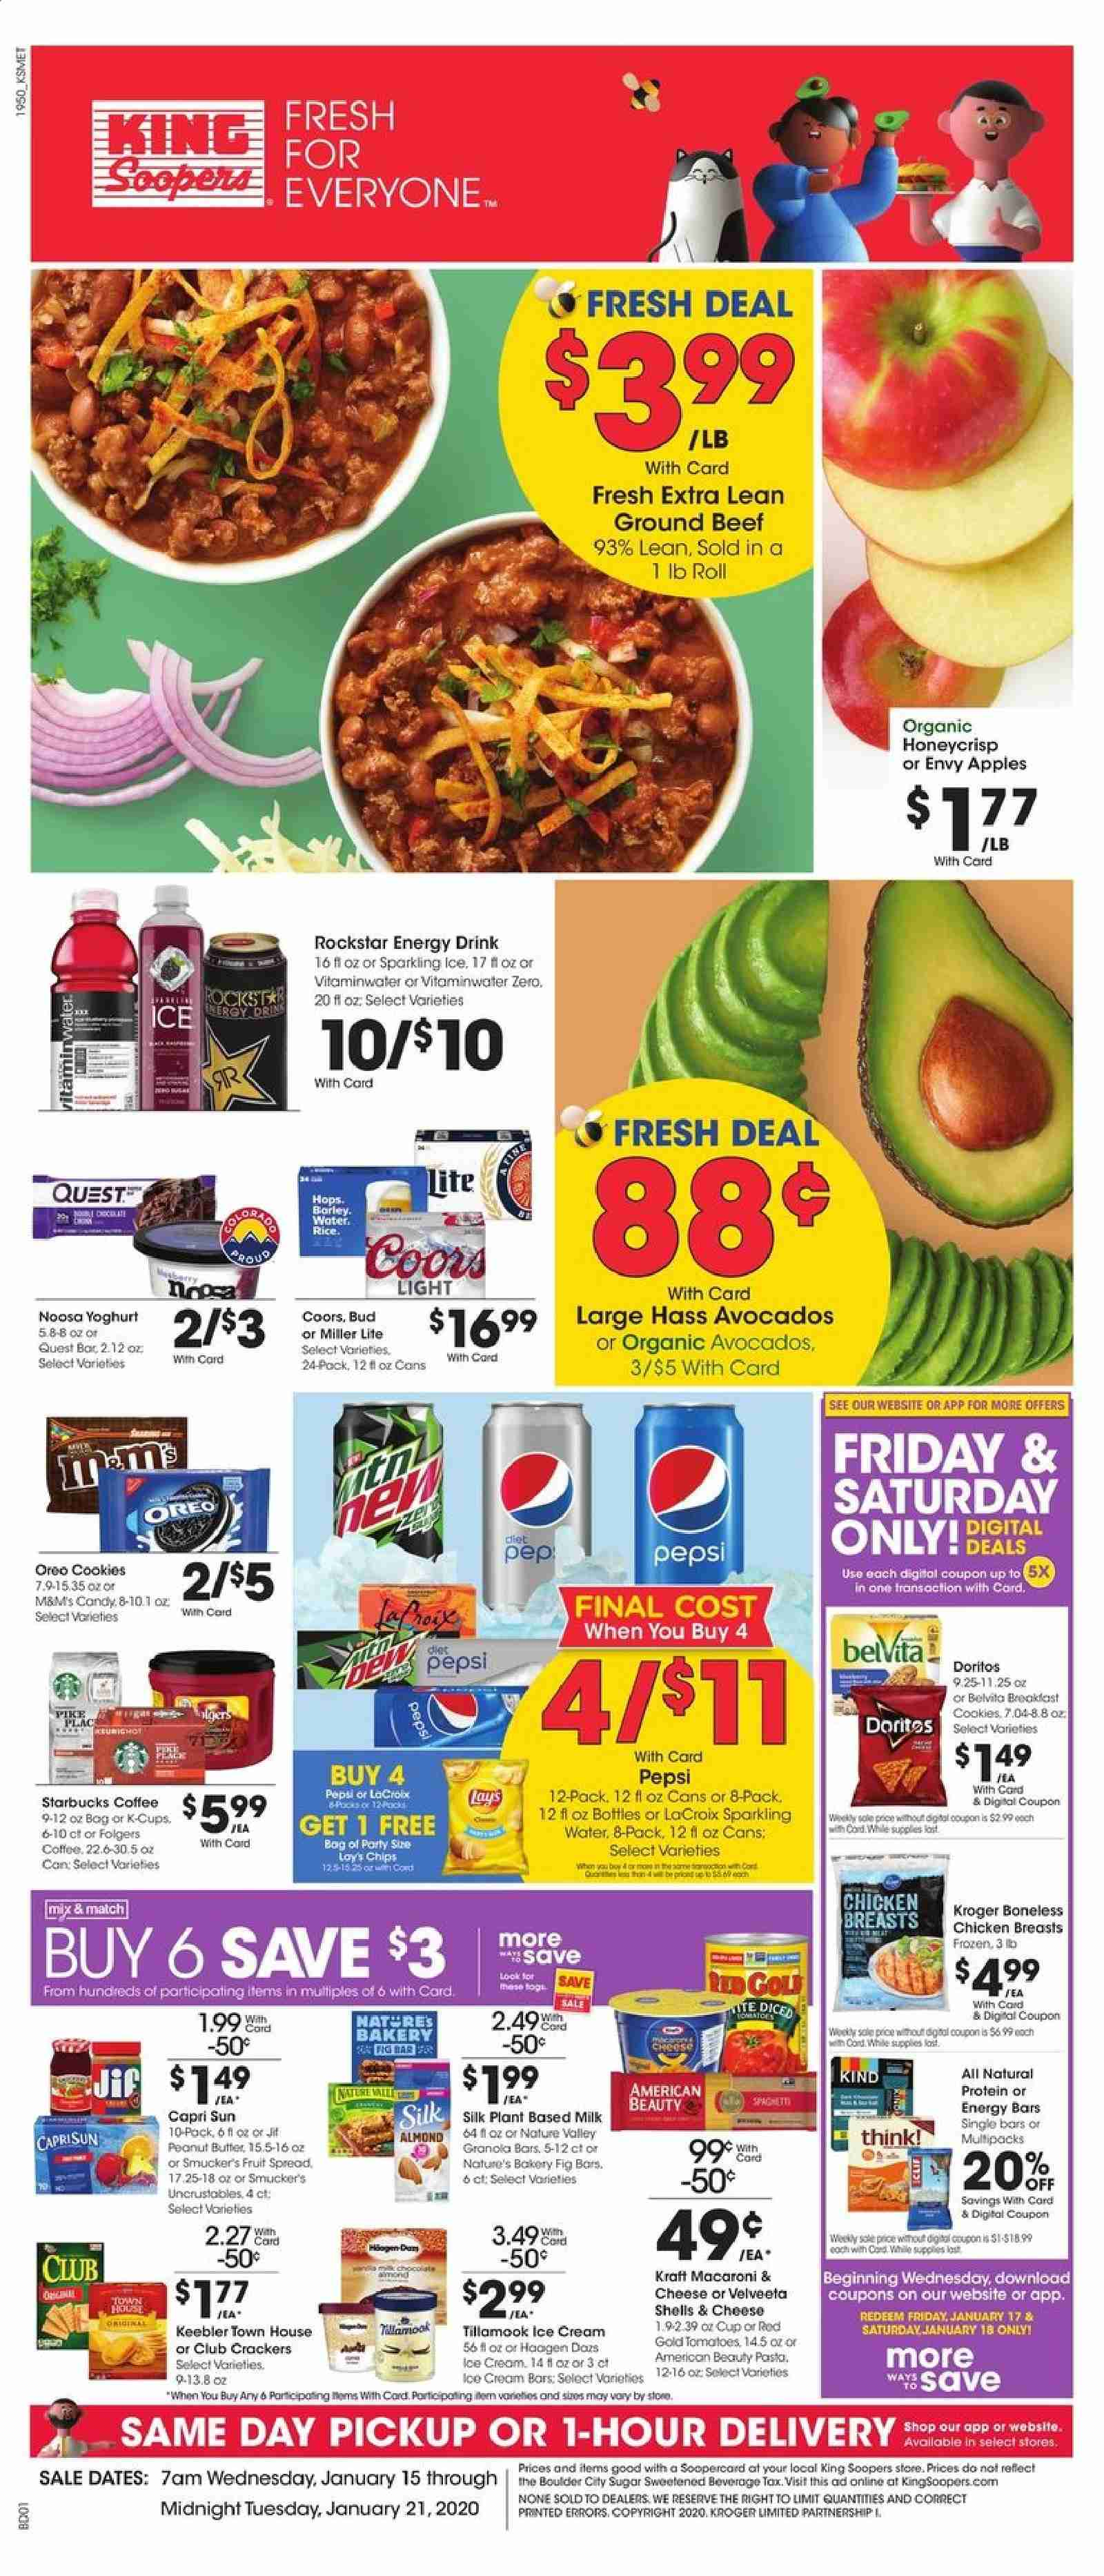 King Soopers Flyer  - 01.15.2020 - 01.21.2020. Page 1.